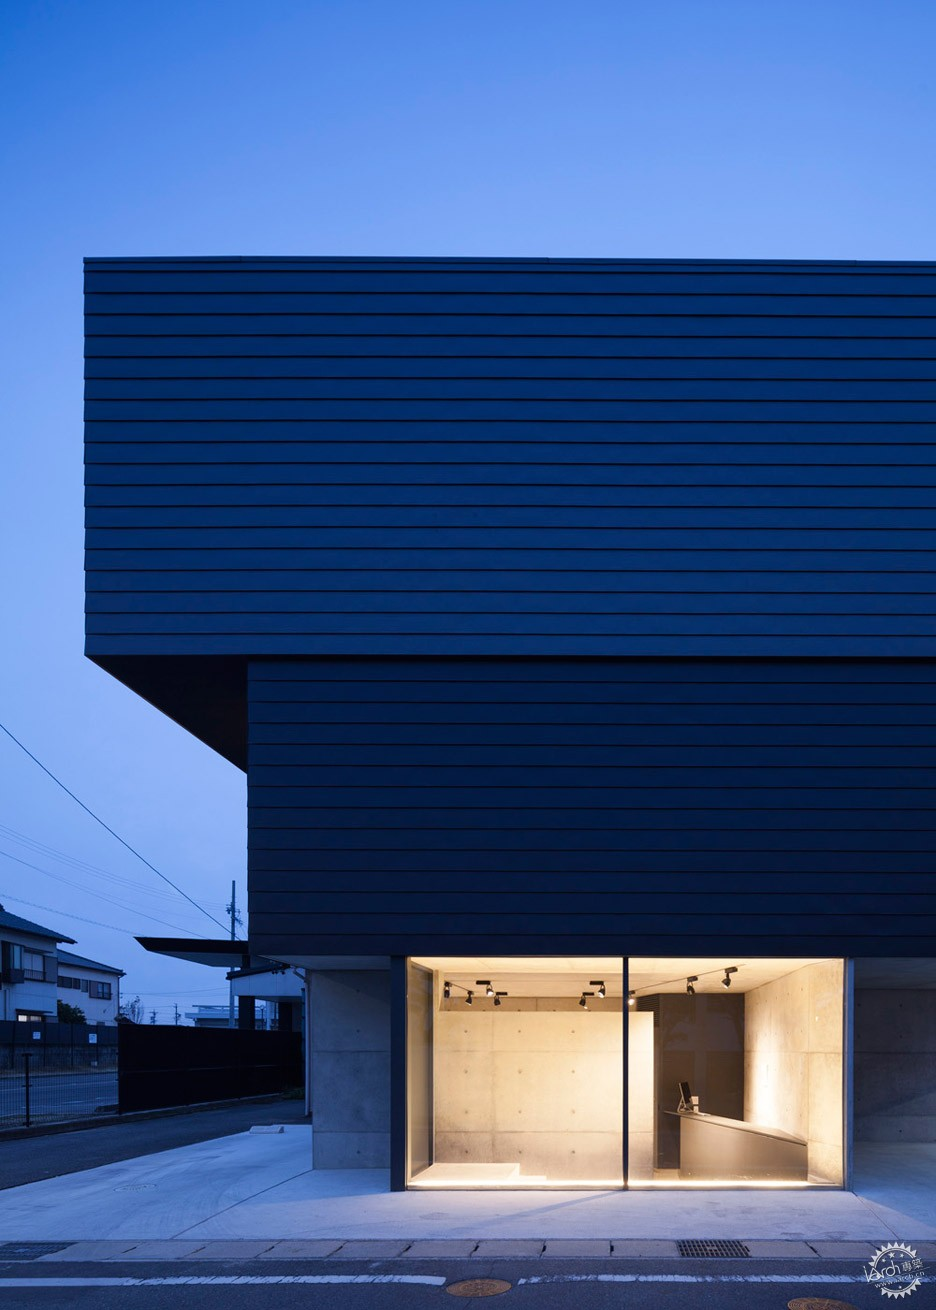 日本Gaze住宅/ APOLLO Architects & Associates第2张图片